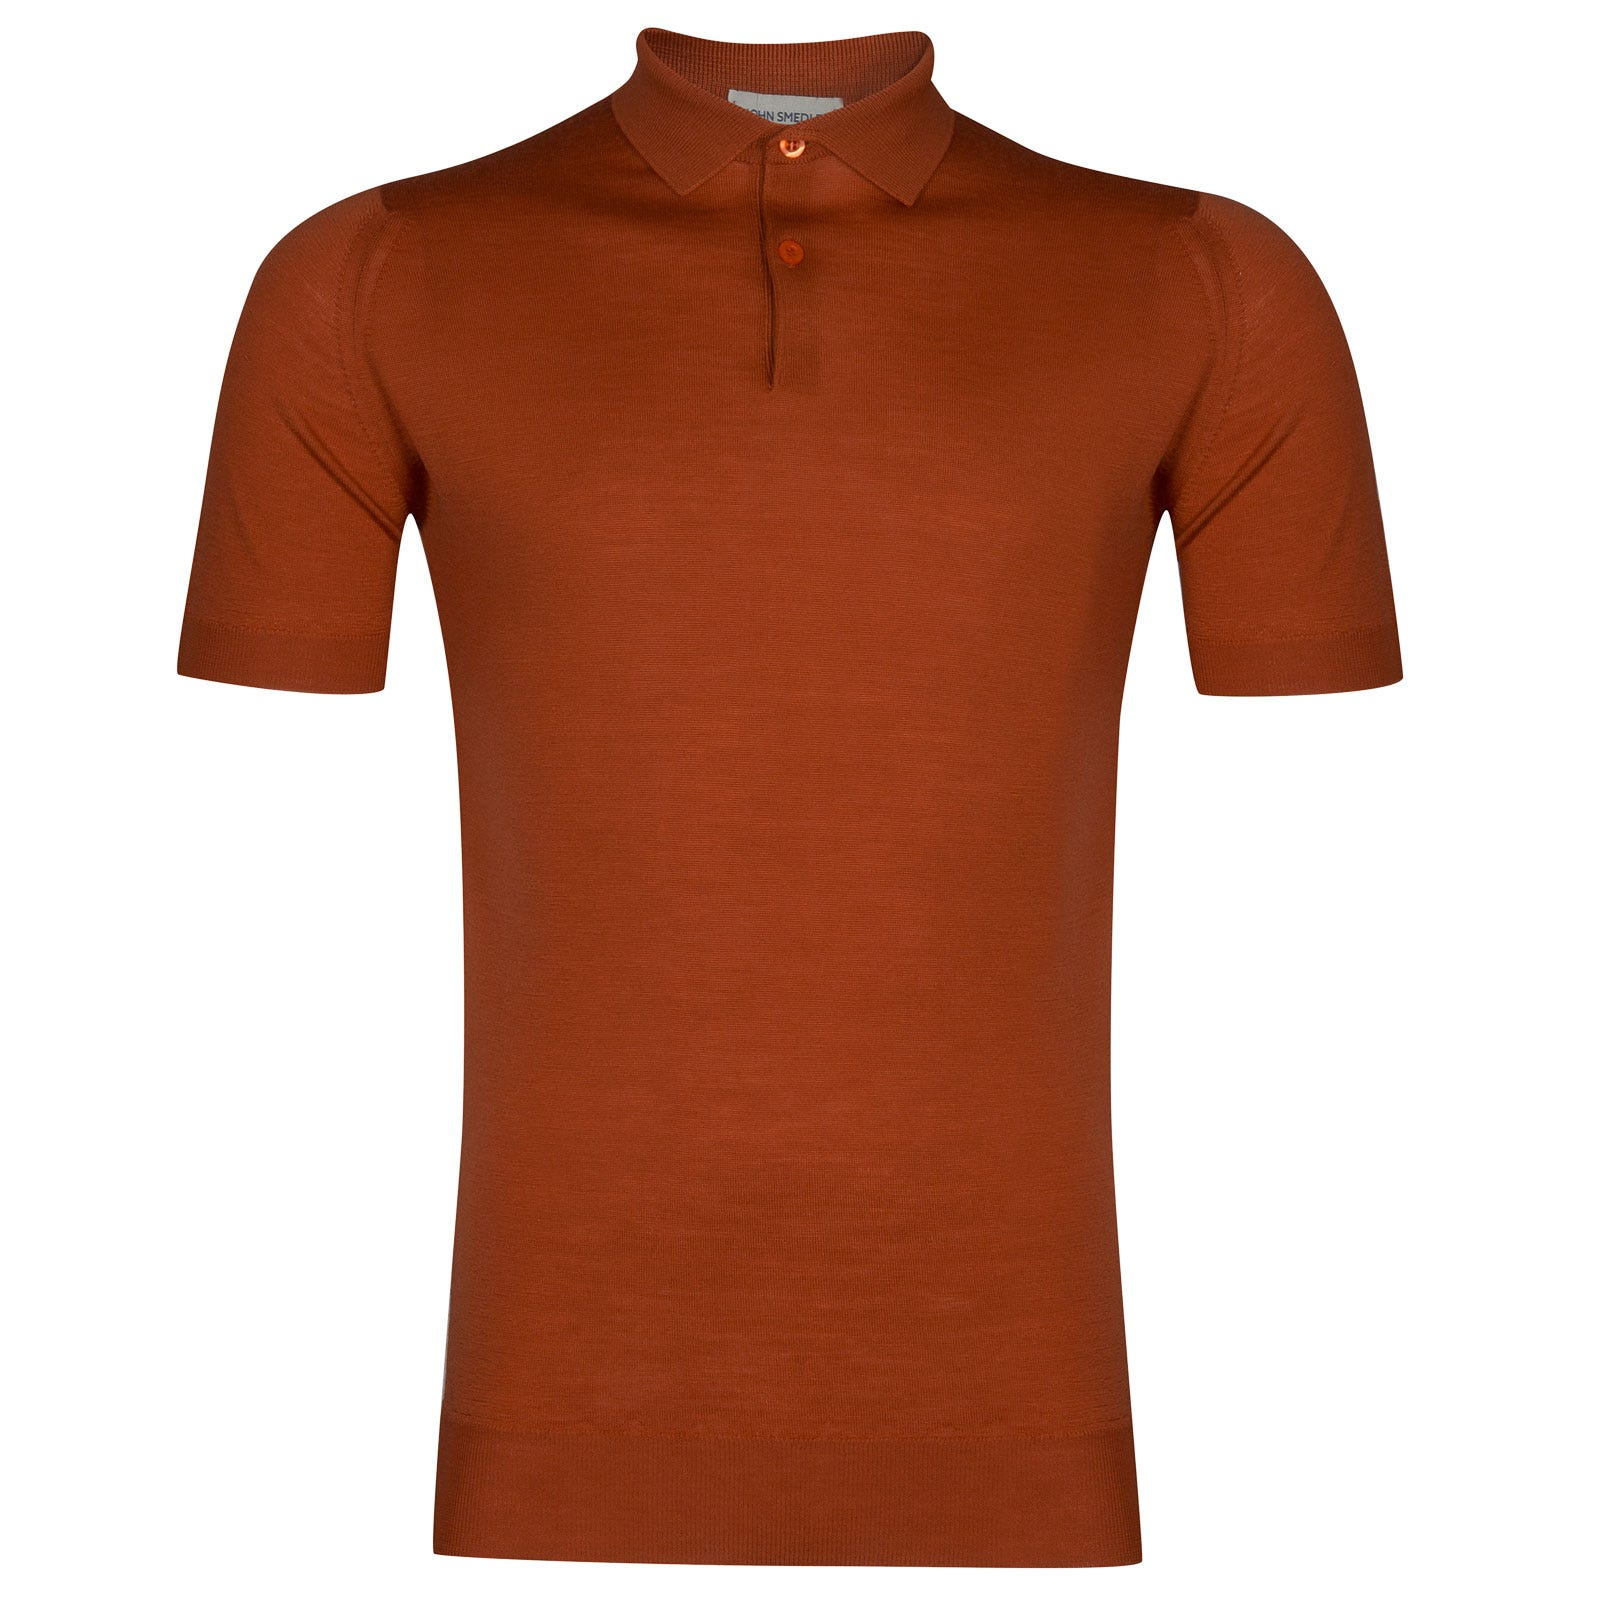 John Smedley payton Merino Wool Shirt in Flare Orange-XL